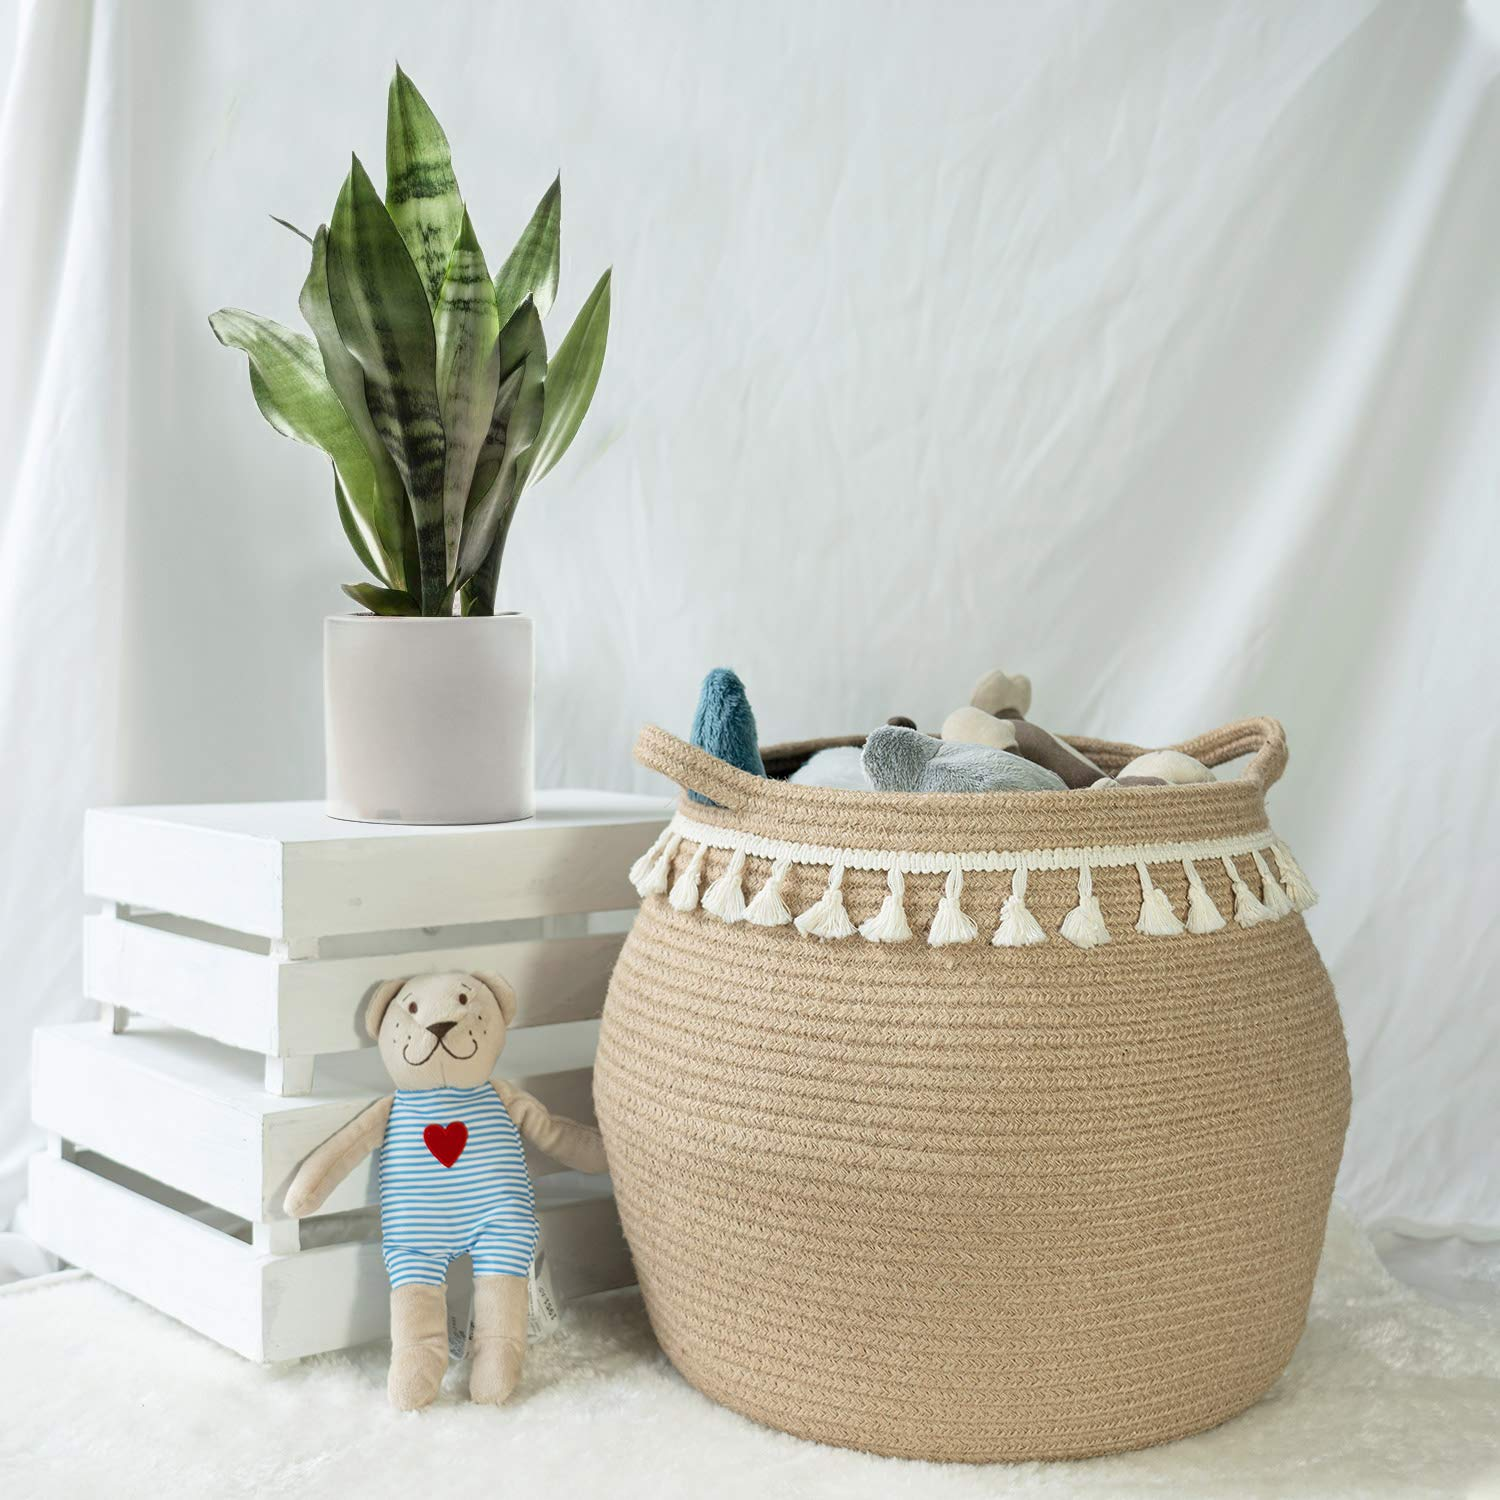 Toys 12 Open Diameter x 12.6 Height Decorative Woven Storage Basket Boho Laundry Basket for Blanket Clothes Plants CherryNow Wicker Basket Sturdy Jute Cotton Rope Belly Basket with Tassel